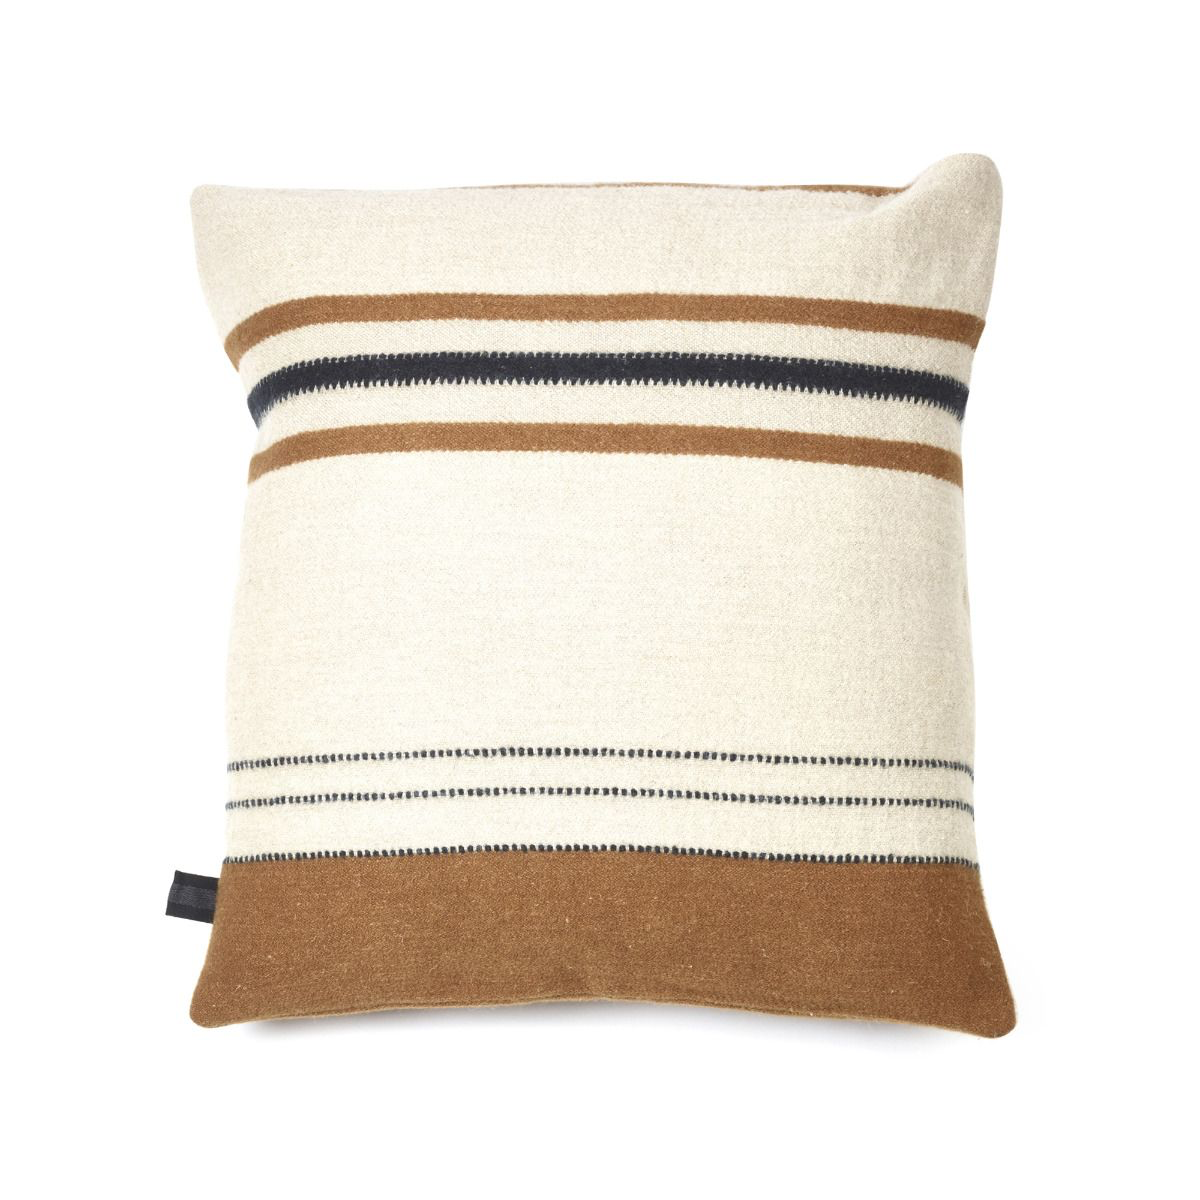 foundry pillow cushion, libeco, accessories | pillows and cushions, - adorn.house